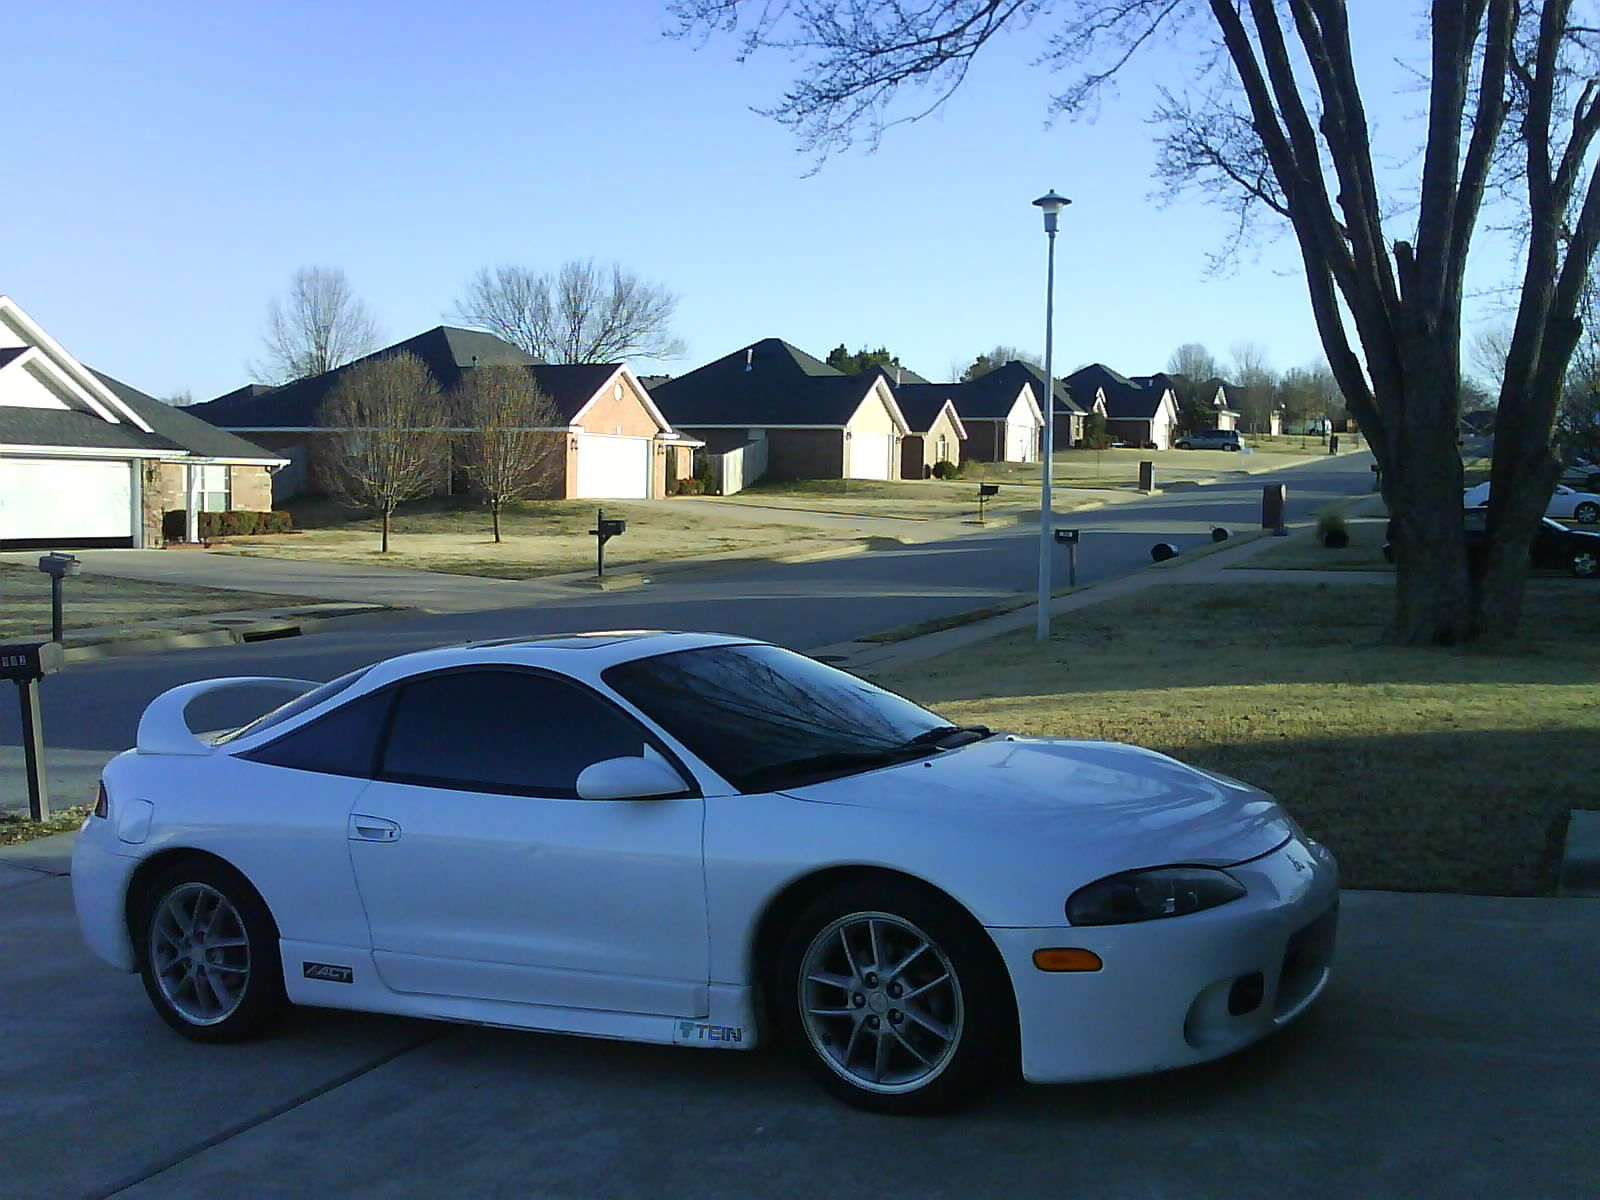 8 Best Cars Images On Pinterest Mitsubishi Eclipse Dream And Autos